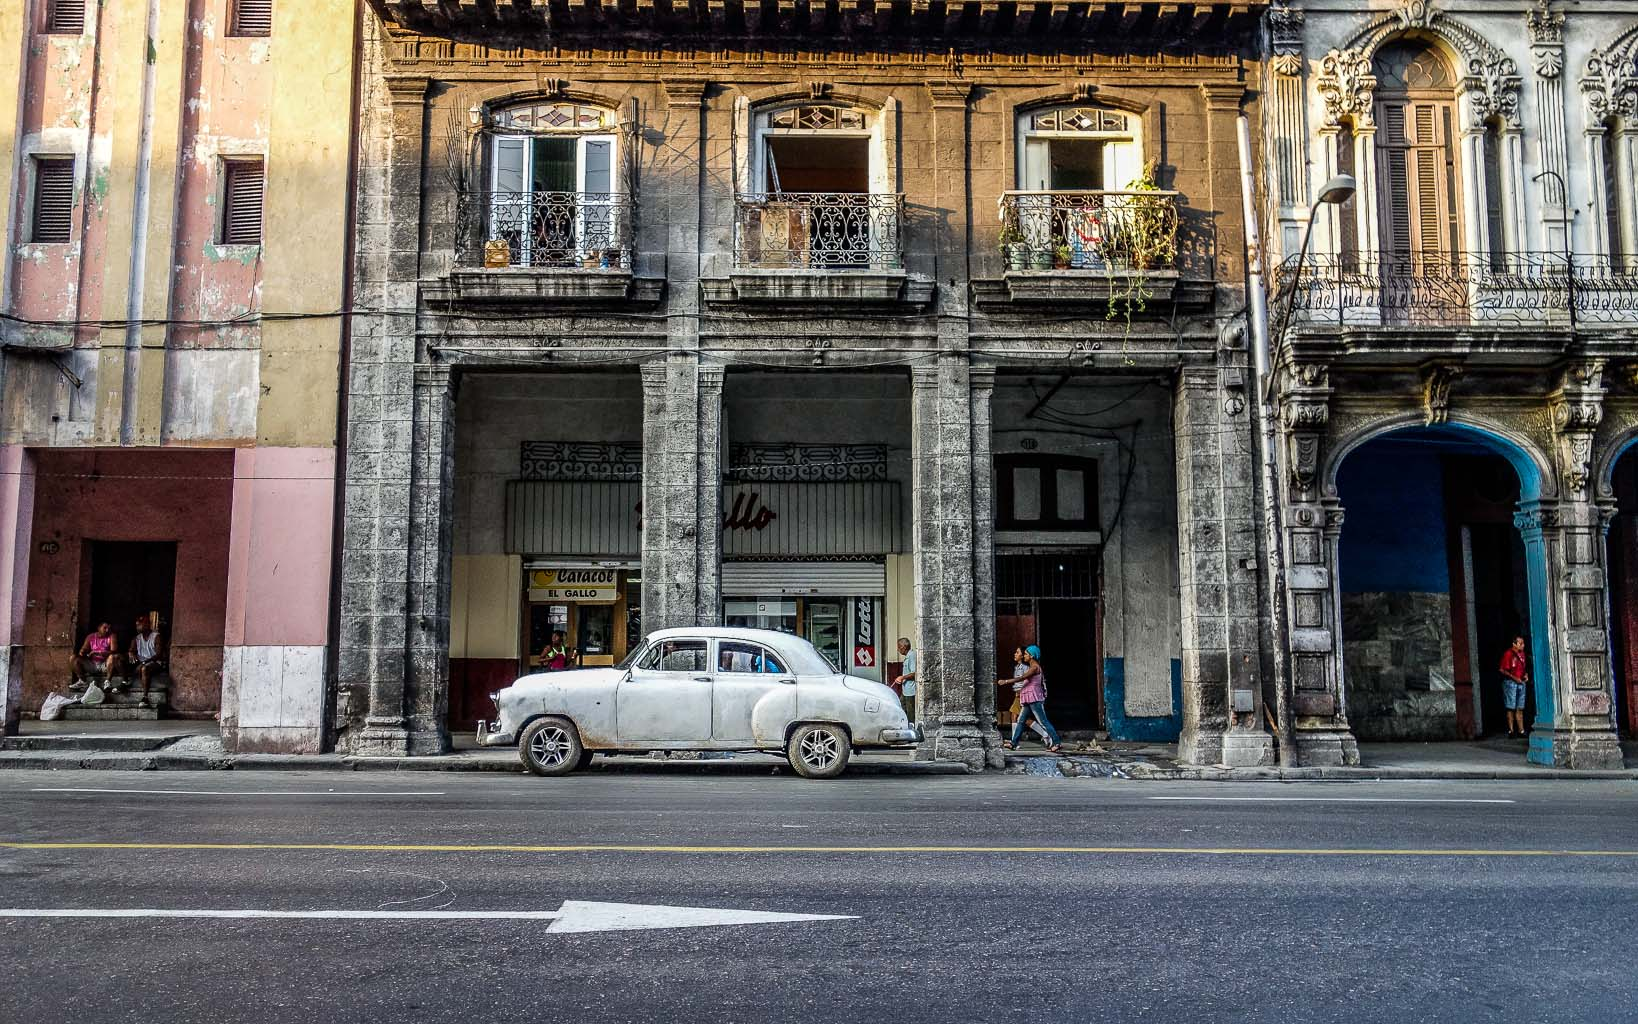 White car in Old Havana Havana Cuba